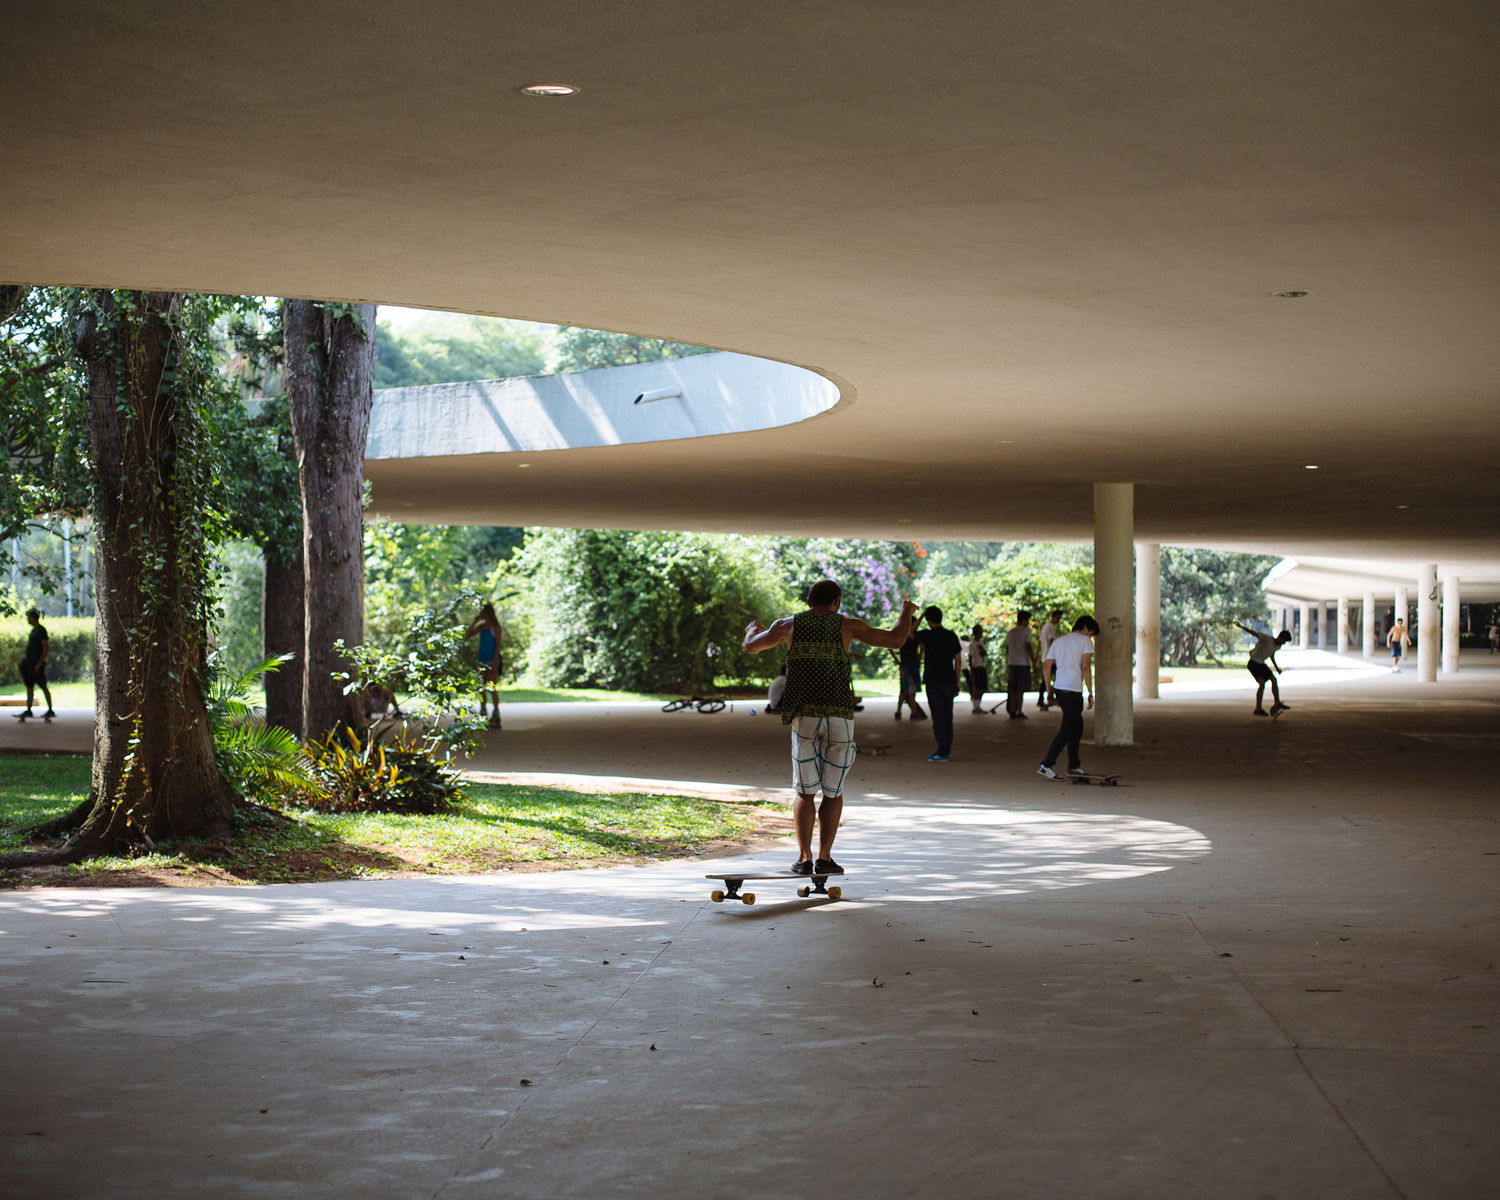 The skate park surrounds the entrance of the São Paulo Museum of Modern Art, located in the center of Ibirapuera Park.